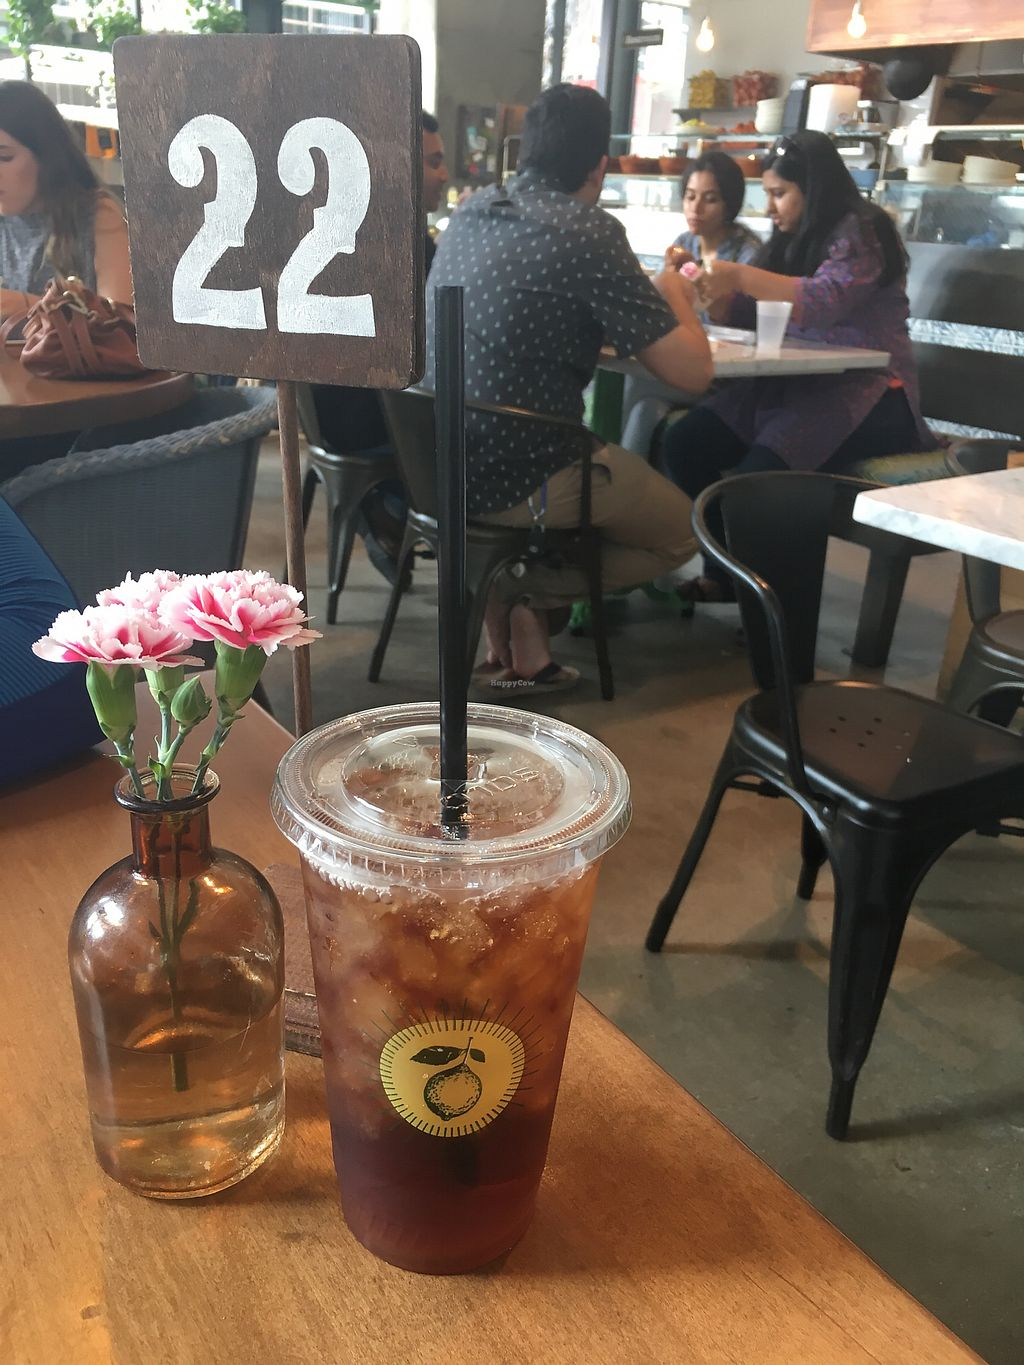 """Photo of Flower Child - Downtown  by <a href=""""/members/profile/giant%20bunnie"""">giant bunnie</a> <br/>Refreshing fresh made iced tea, with free refills  <br/> March 24, 2018  - <a href='/contact/abuse/image/109440/375522'>Report</a>"""